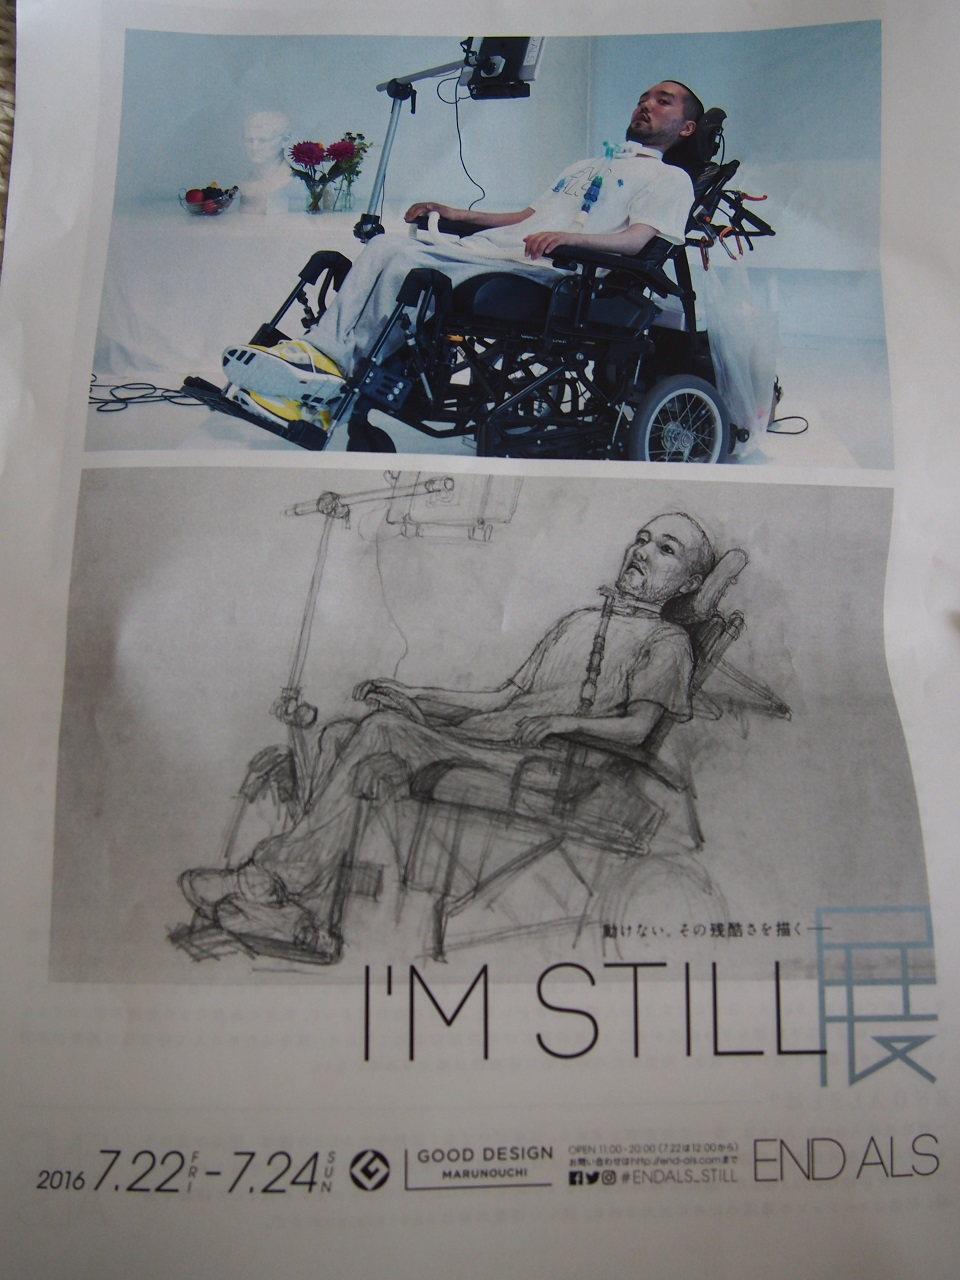 「I\'M STILL」Exhibition @GOOD DESIGN Marunouchi_f0043559_114529.jpg